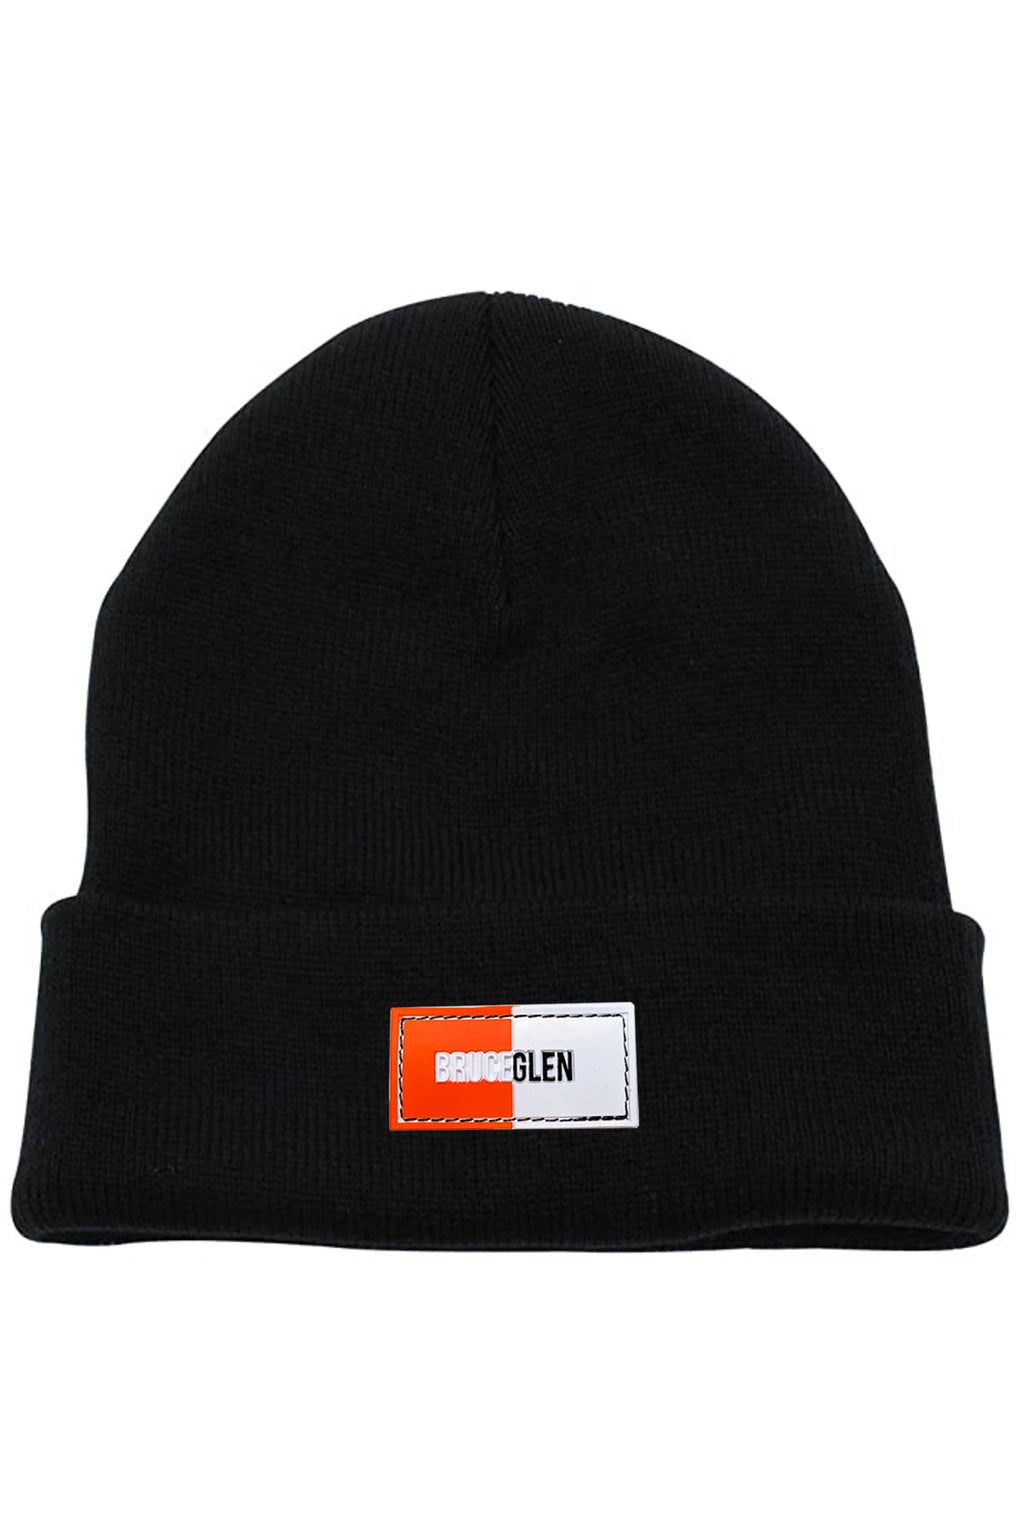 Rubber Patch Beenie